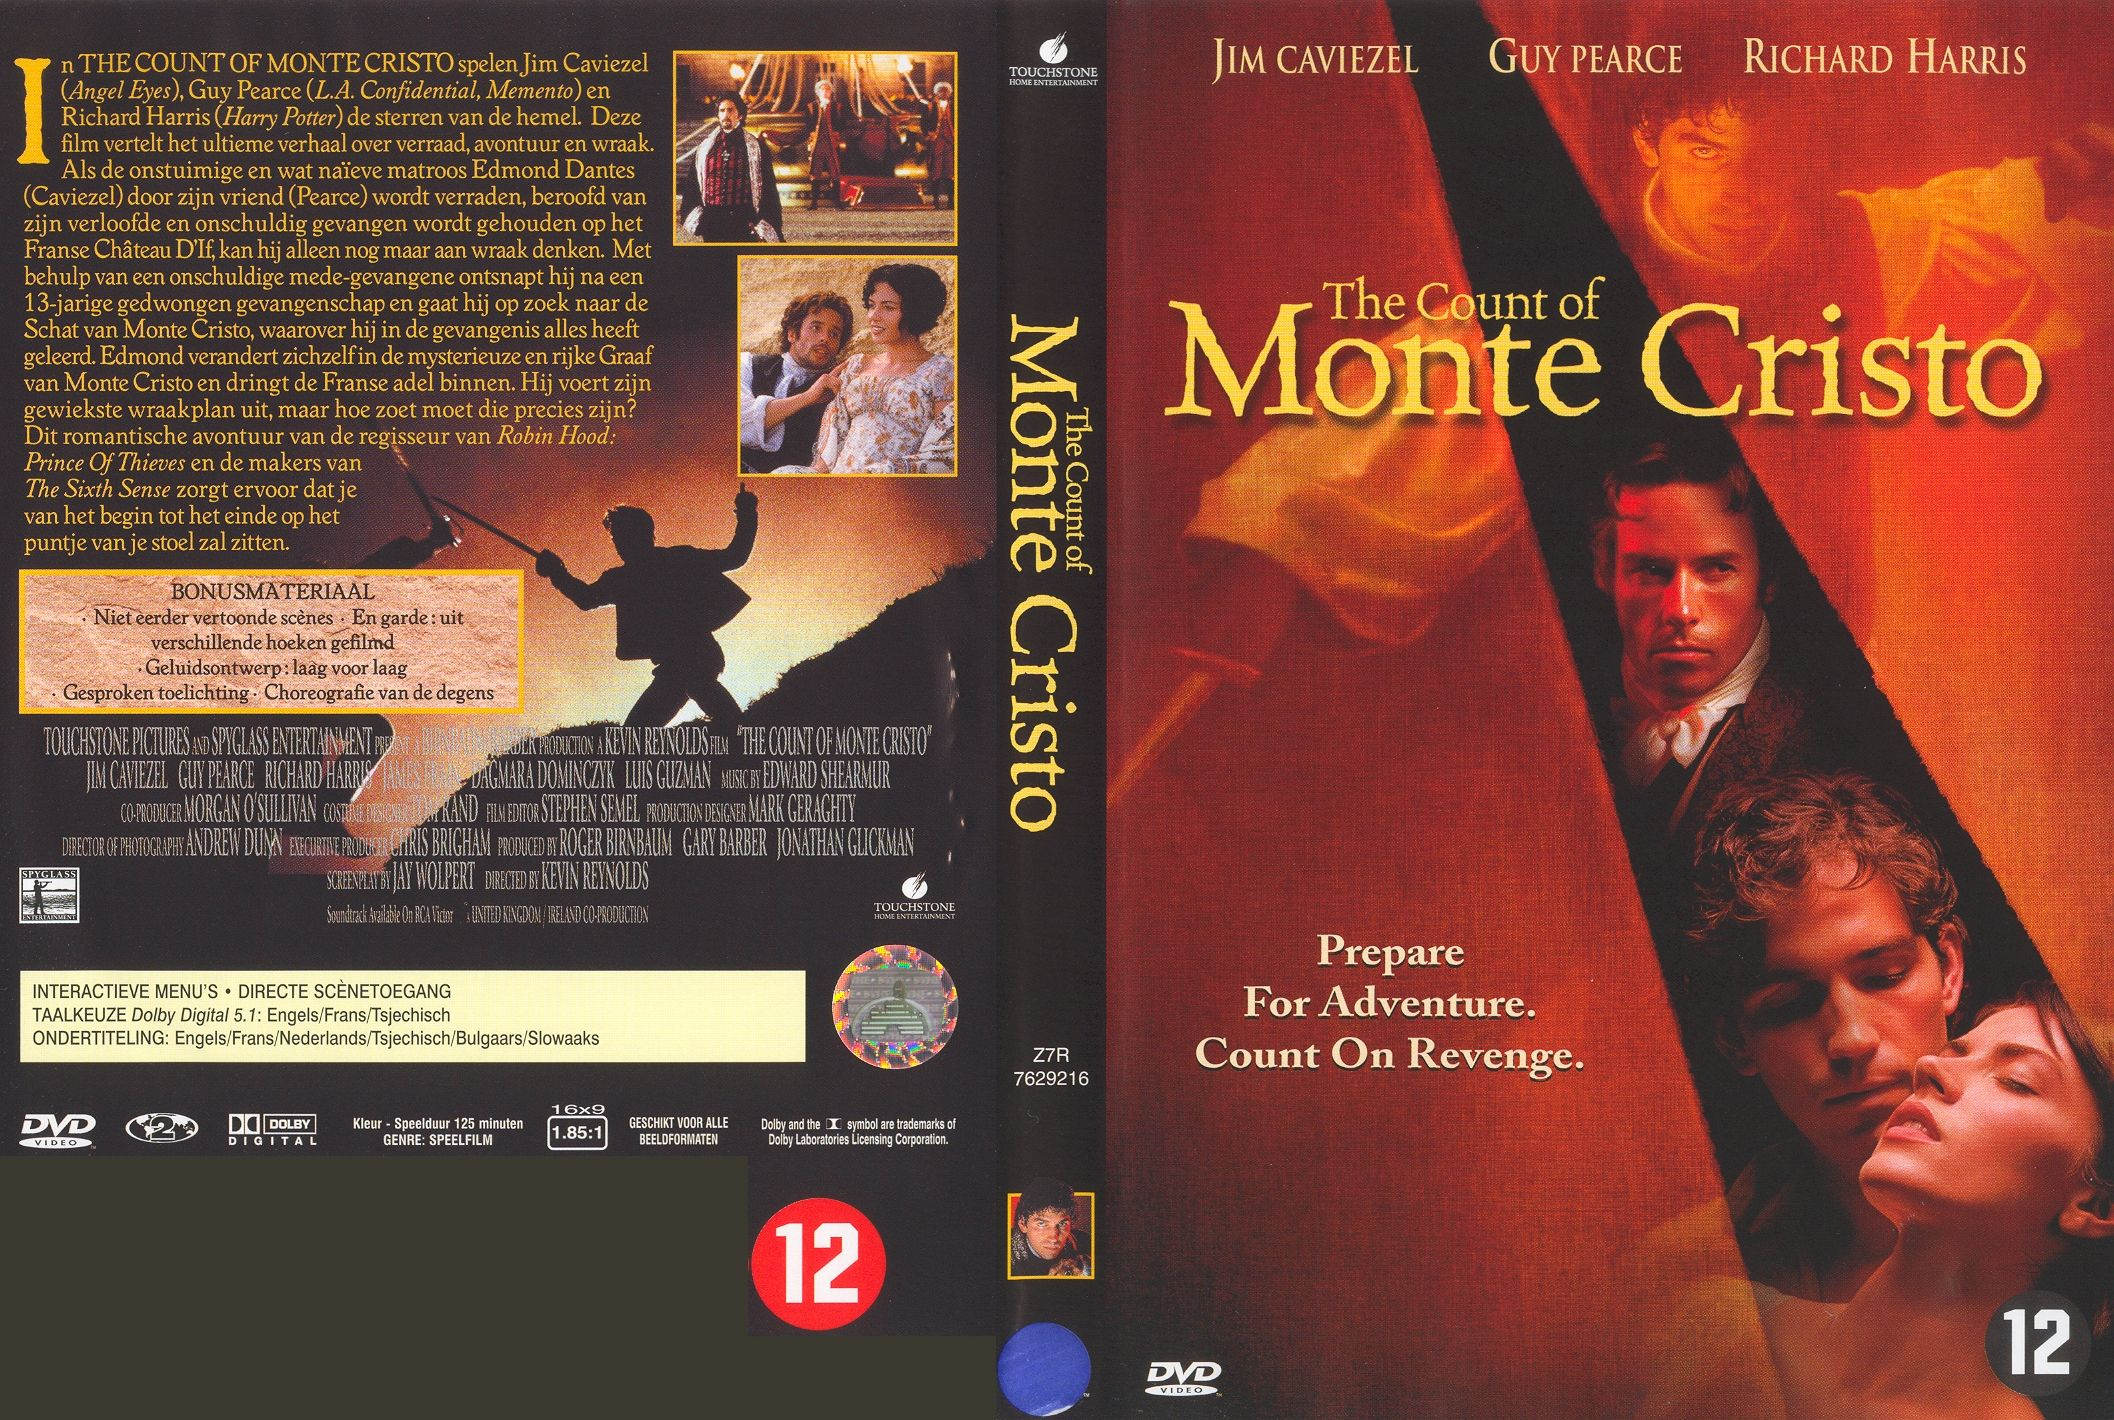 the count of monte cristo Mondego, now known as the count de morcerf, is the first to be punished dantès exposes morcerf's darkest secret: morcerf made his fortune by betraying his former patron, the greek vizier ali pacha, and he then sold ali pacha's wife and daughter into slavery.